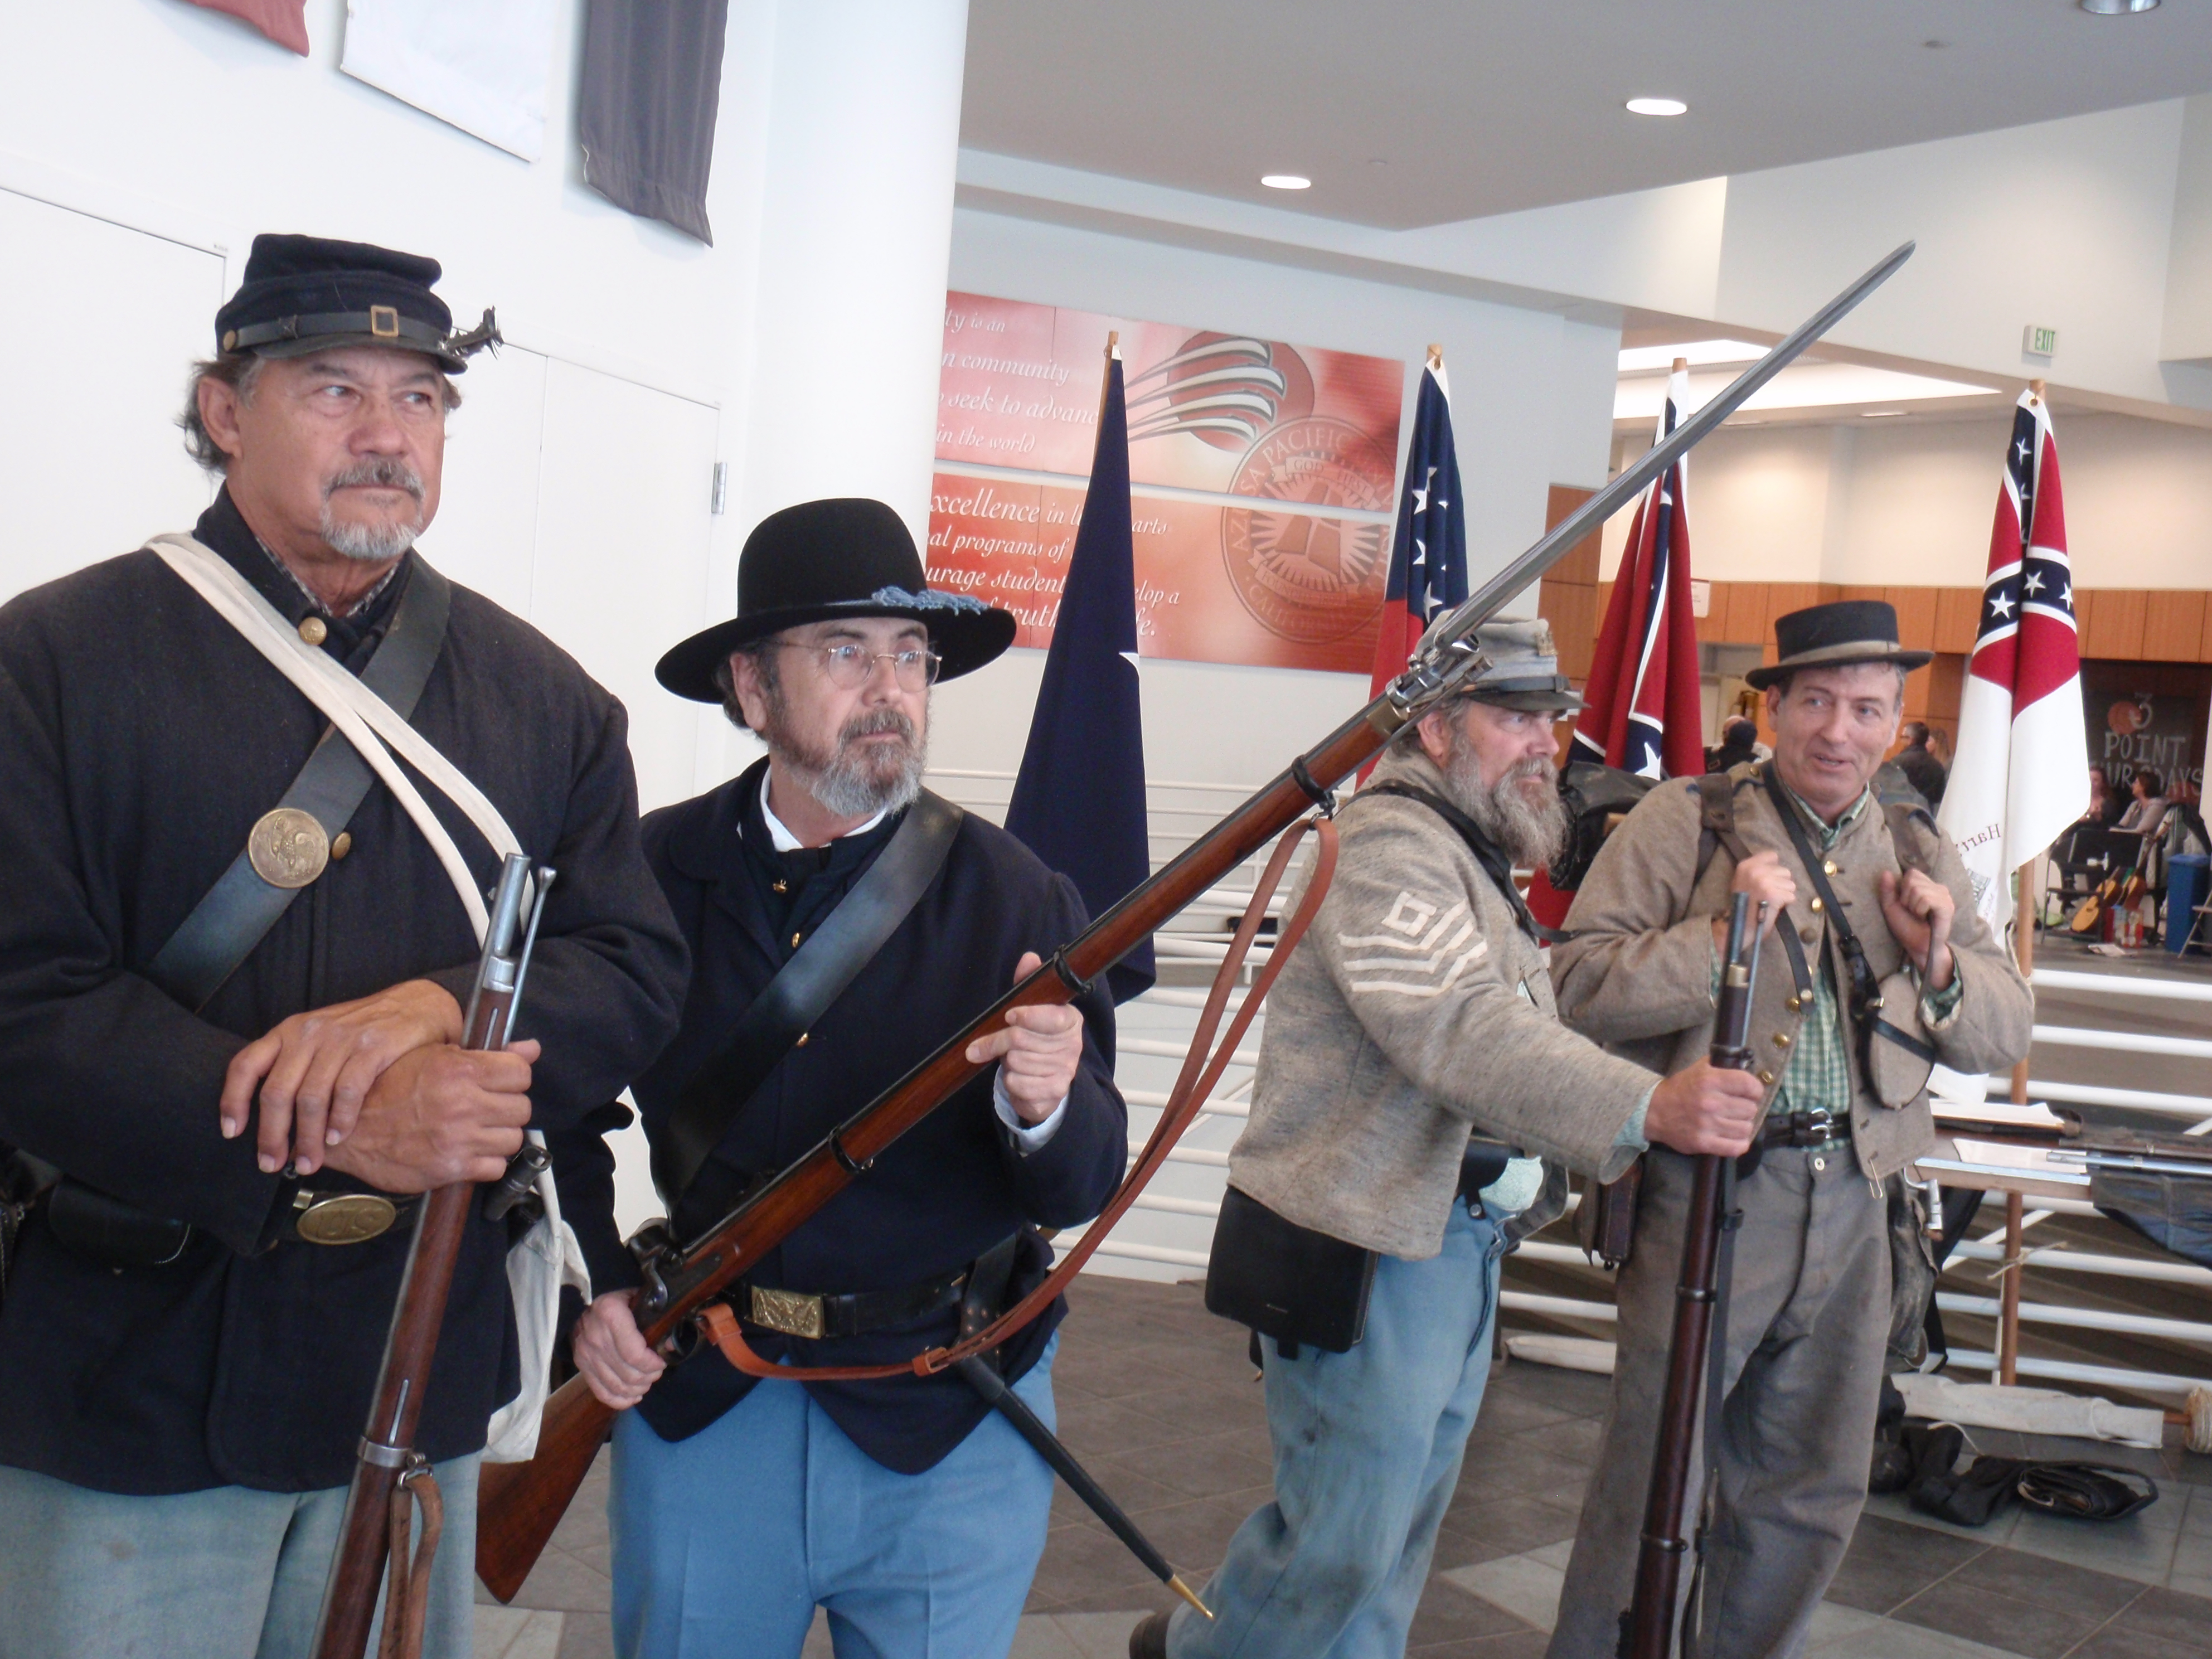 Union and Confederate soldier reenactors at Azusa Pacific University on 3/1/14. I do not recall what unit they are with. Photo by James Ulvog.